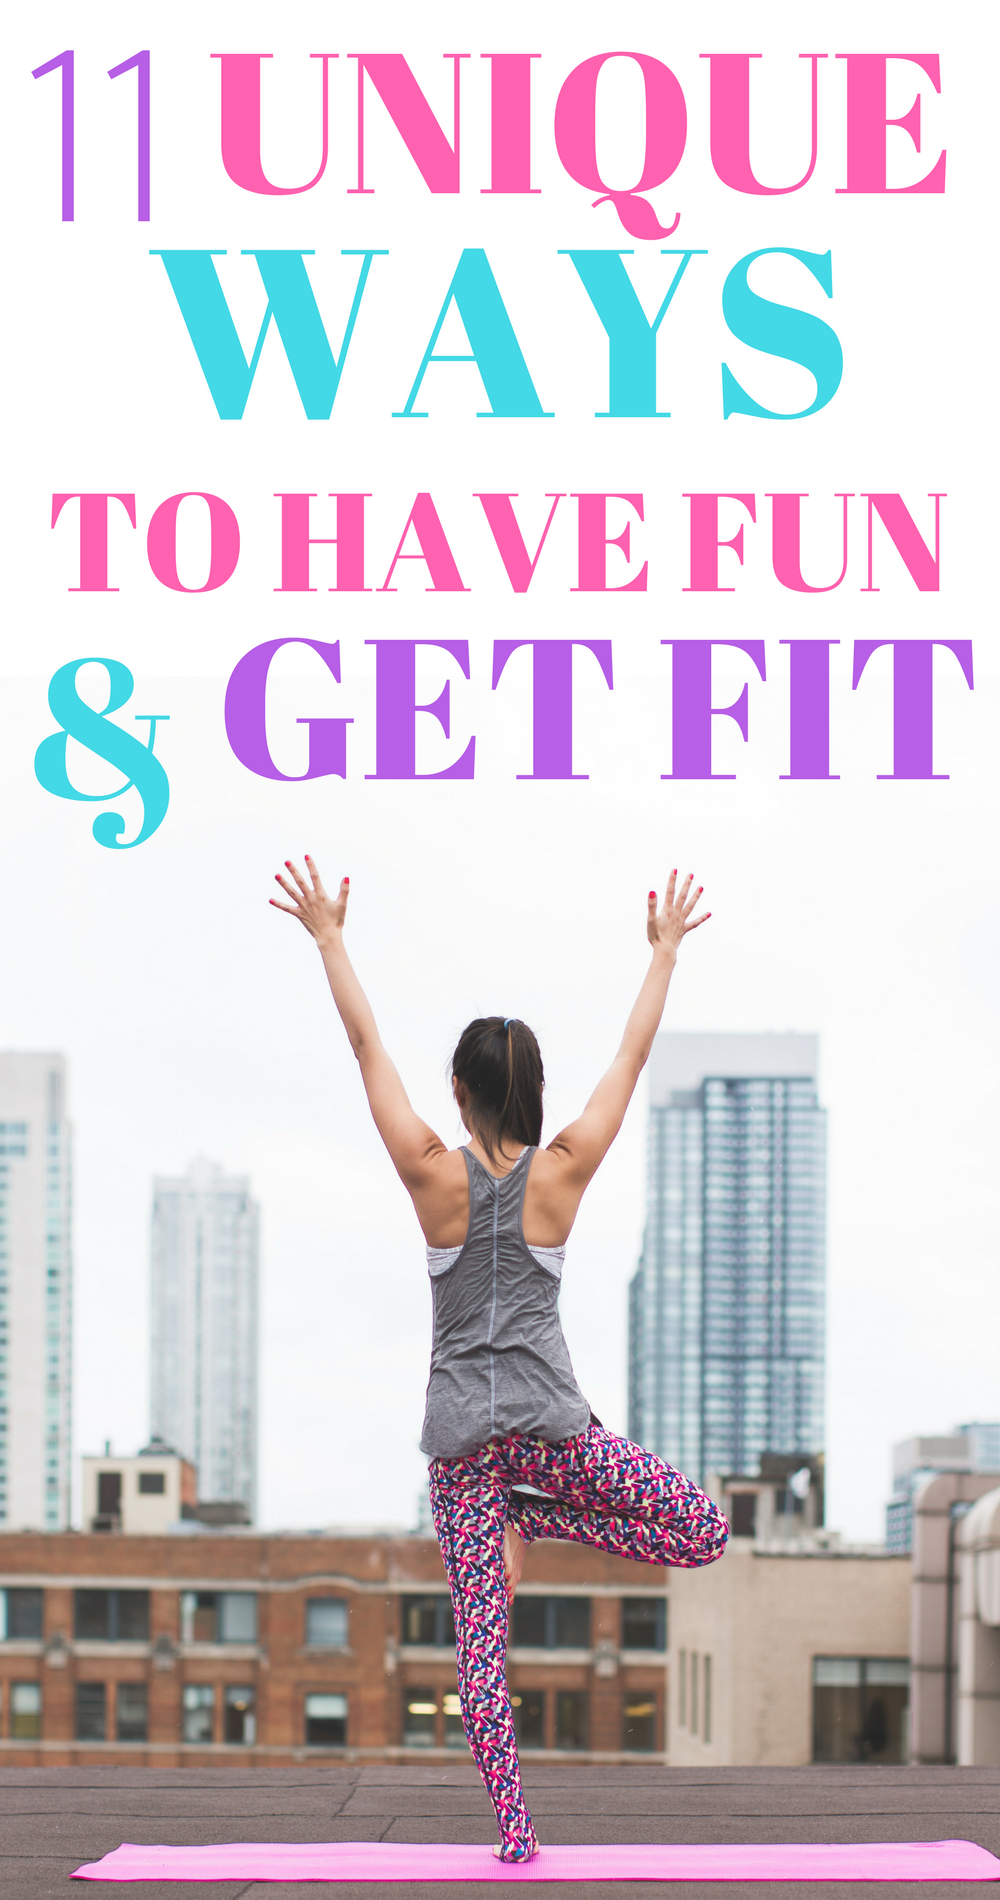 Exercise doesn't have to be terrible or boring with these fun ways to stay in shape! #fitness #exerc...